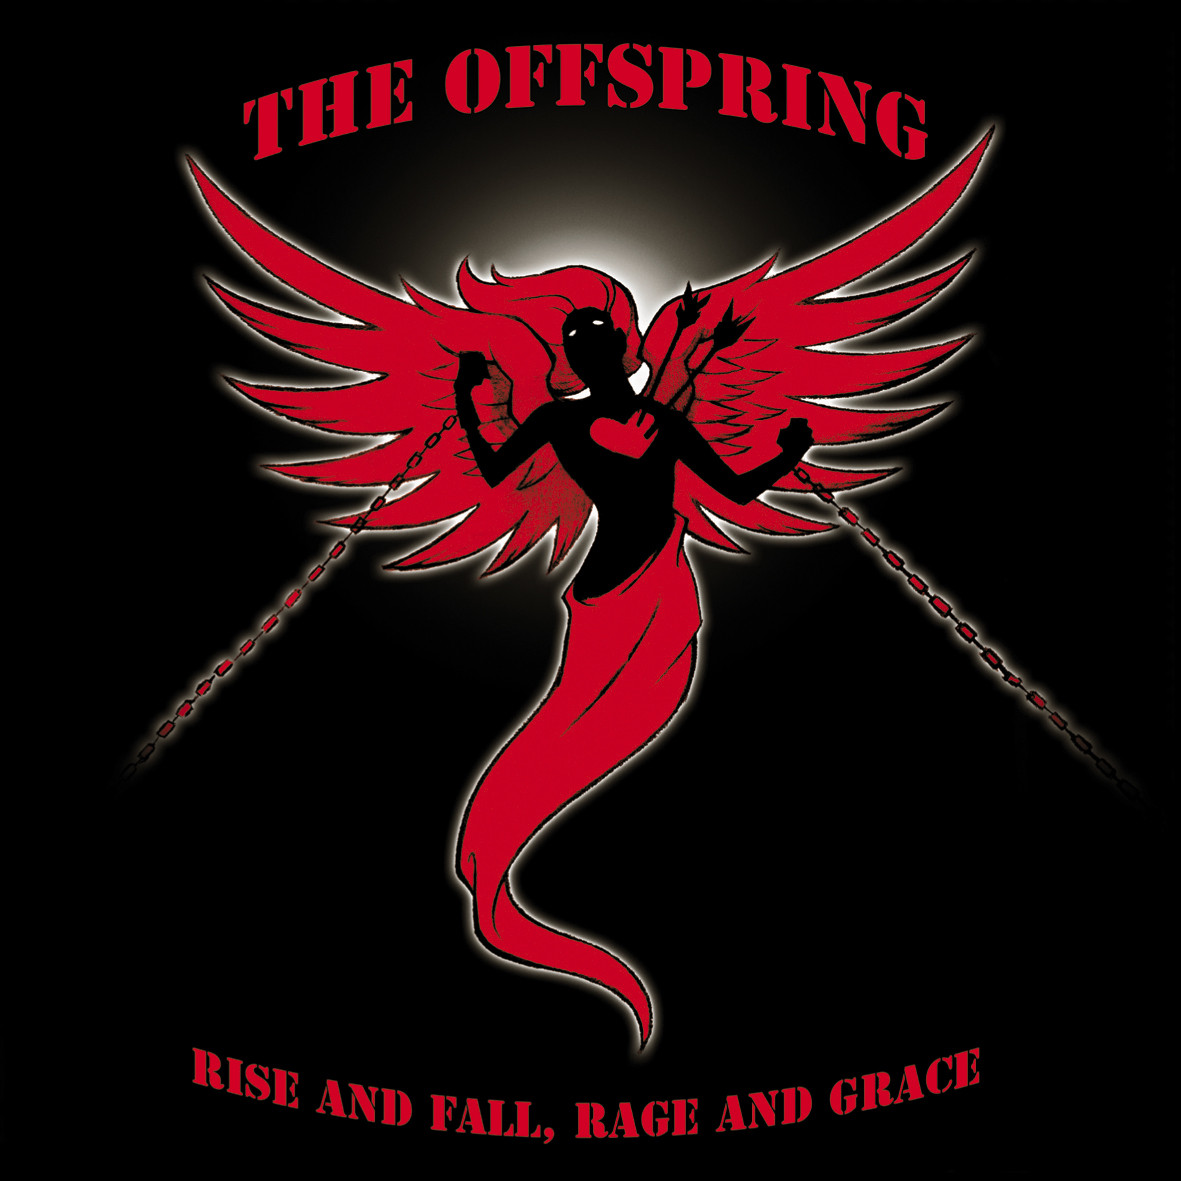 The Offspring: Rise And Fall, Rage And Grace (2008) Book Cover